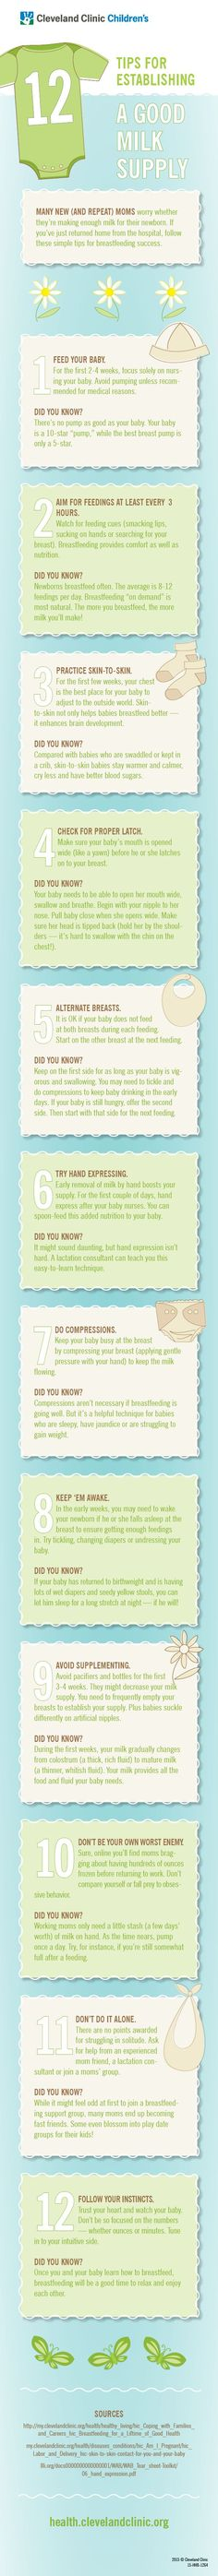 Worried about having enough milk for your new baby? Get off to a good start breastfeeding with these tips. 12 Tips for Establishing a Good Breast Milk Supply Nursing Tips, Breastfeeding And Pumping, After Baby, After Birth, Baby On The Way, Baby Time, Baby Hacks, Baby Feeding, Breast Feeding